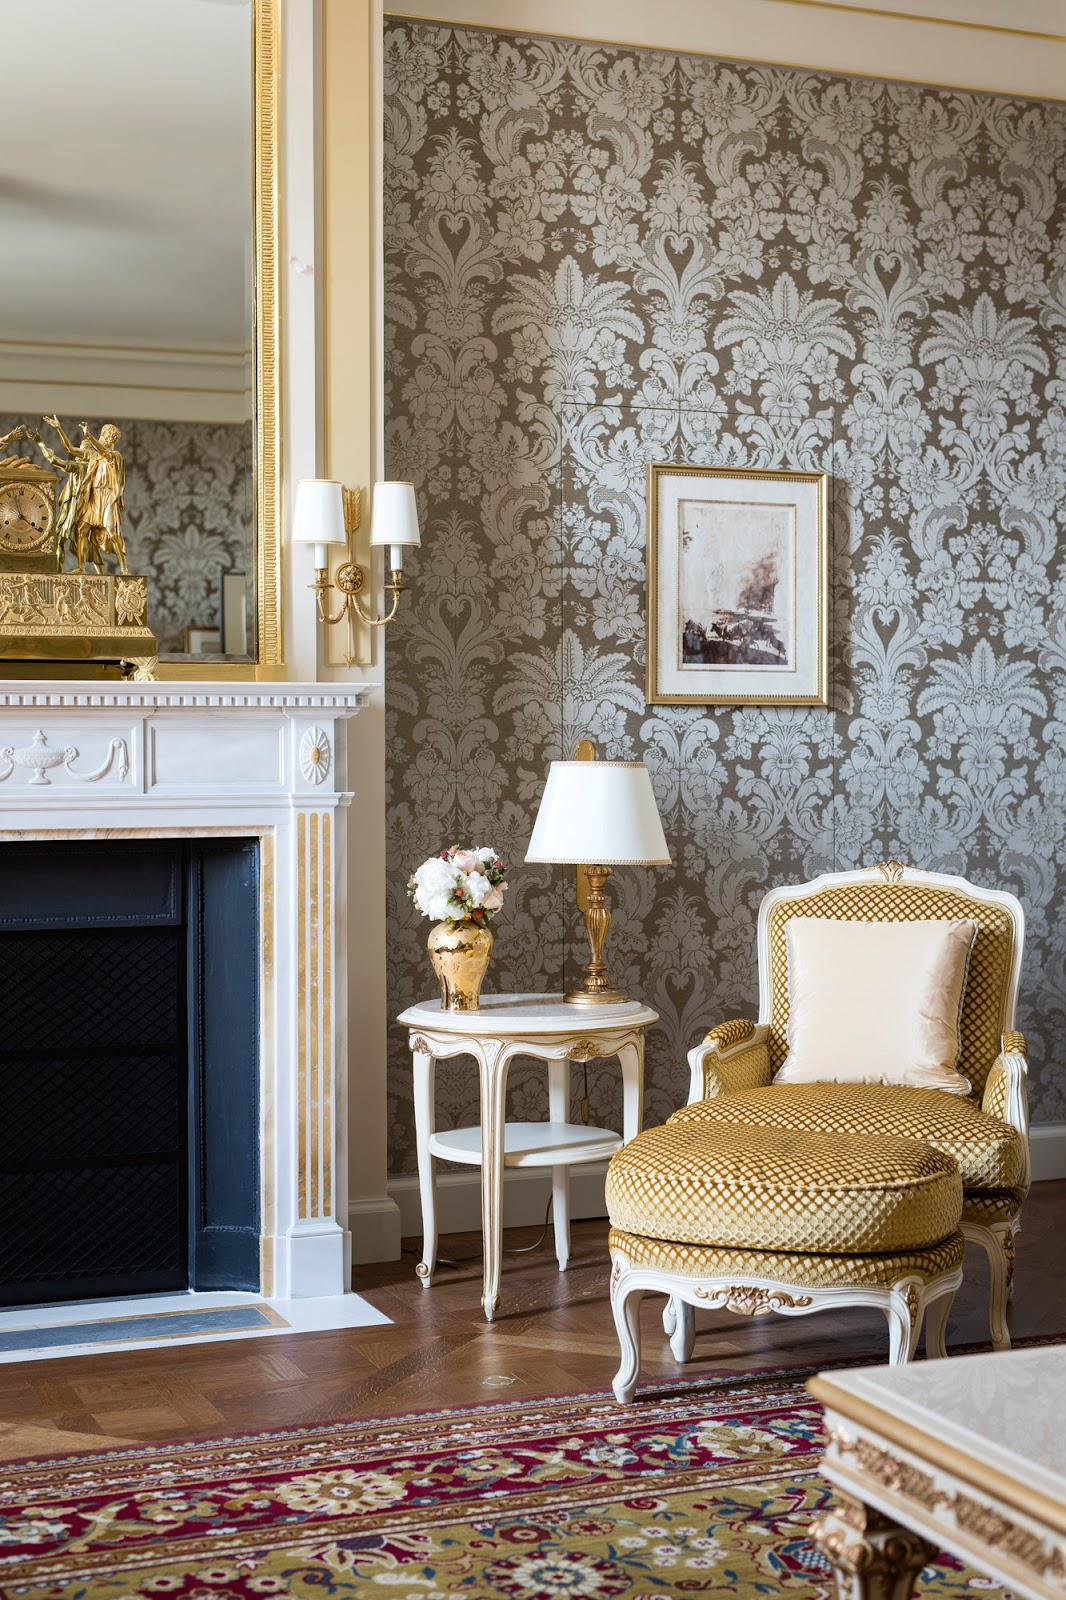 Breathtaking feminine romantic luxury interior renovated Ritz Paris